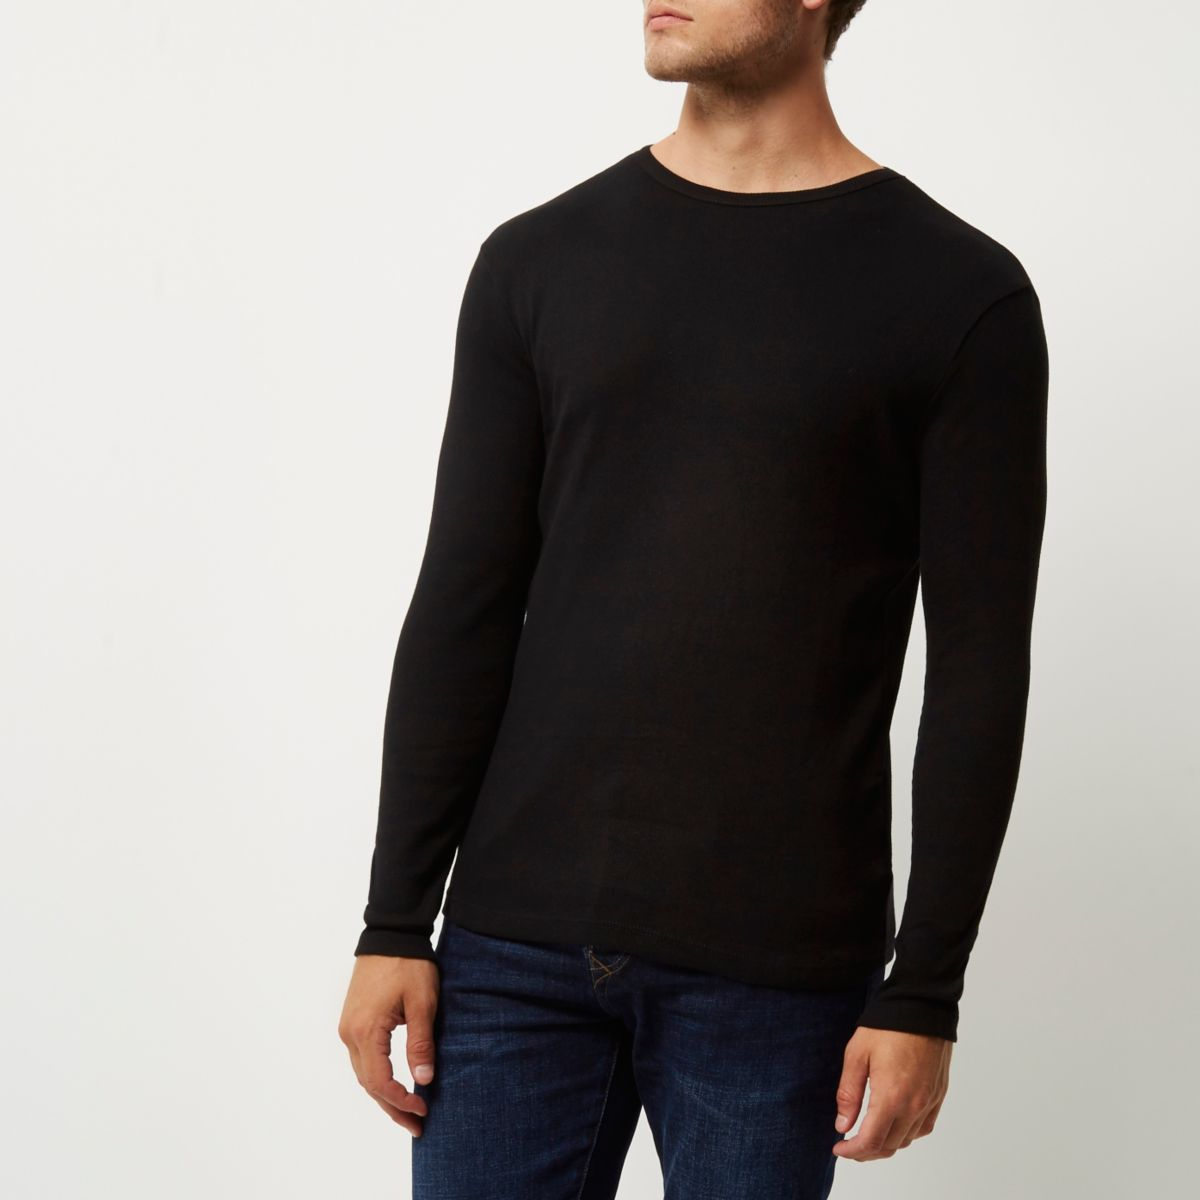 Schwarzes, langärmliges Slim Fit T-Shirt